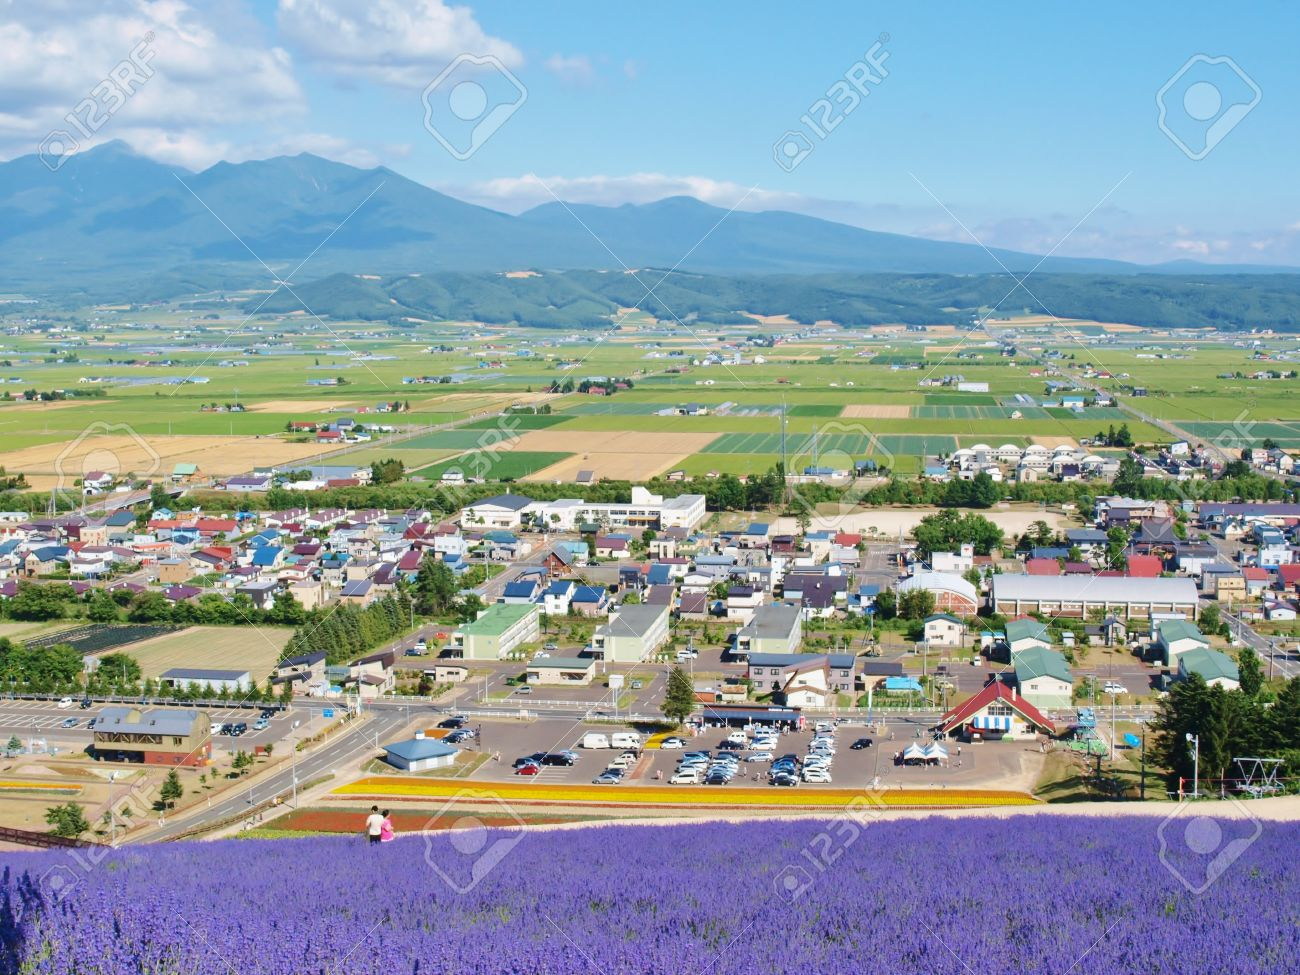 The City Lavender Field View On The Mountain At Furano Hokkaido